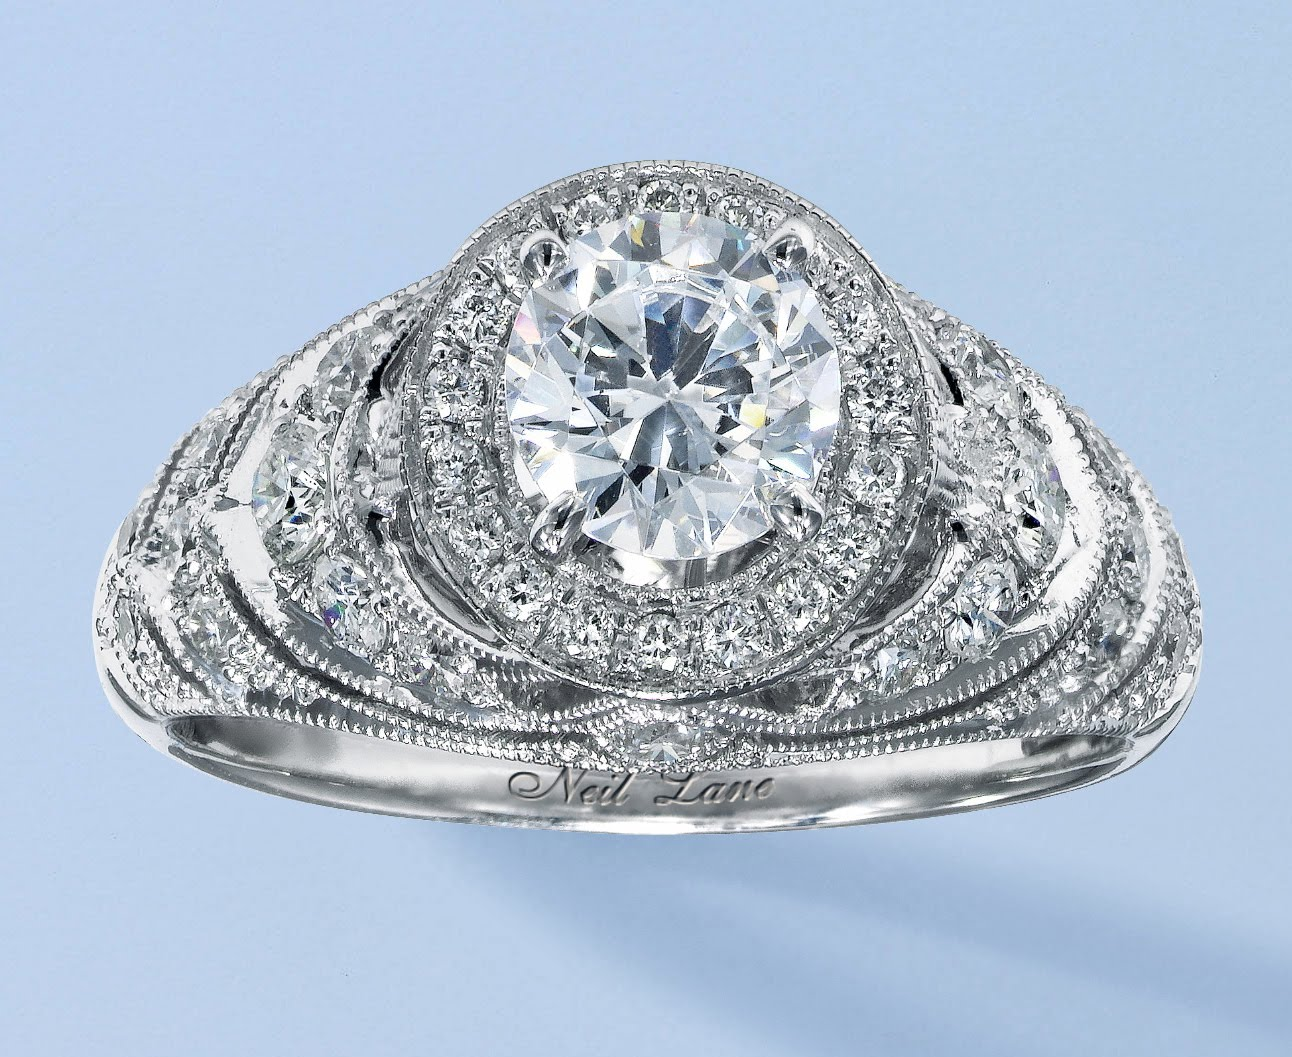 neil lane creates bridal collection for kay wedding rings sets Neil Lane Creates Bridal Collection for Kay Jewelers